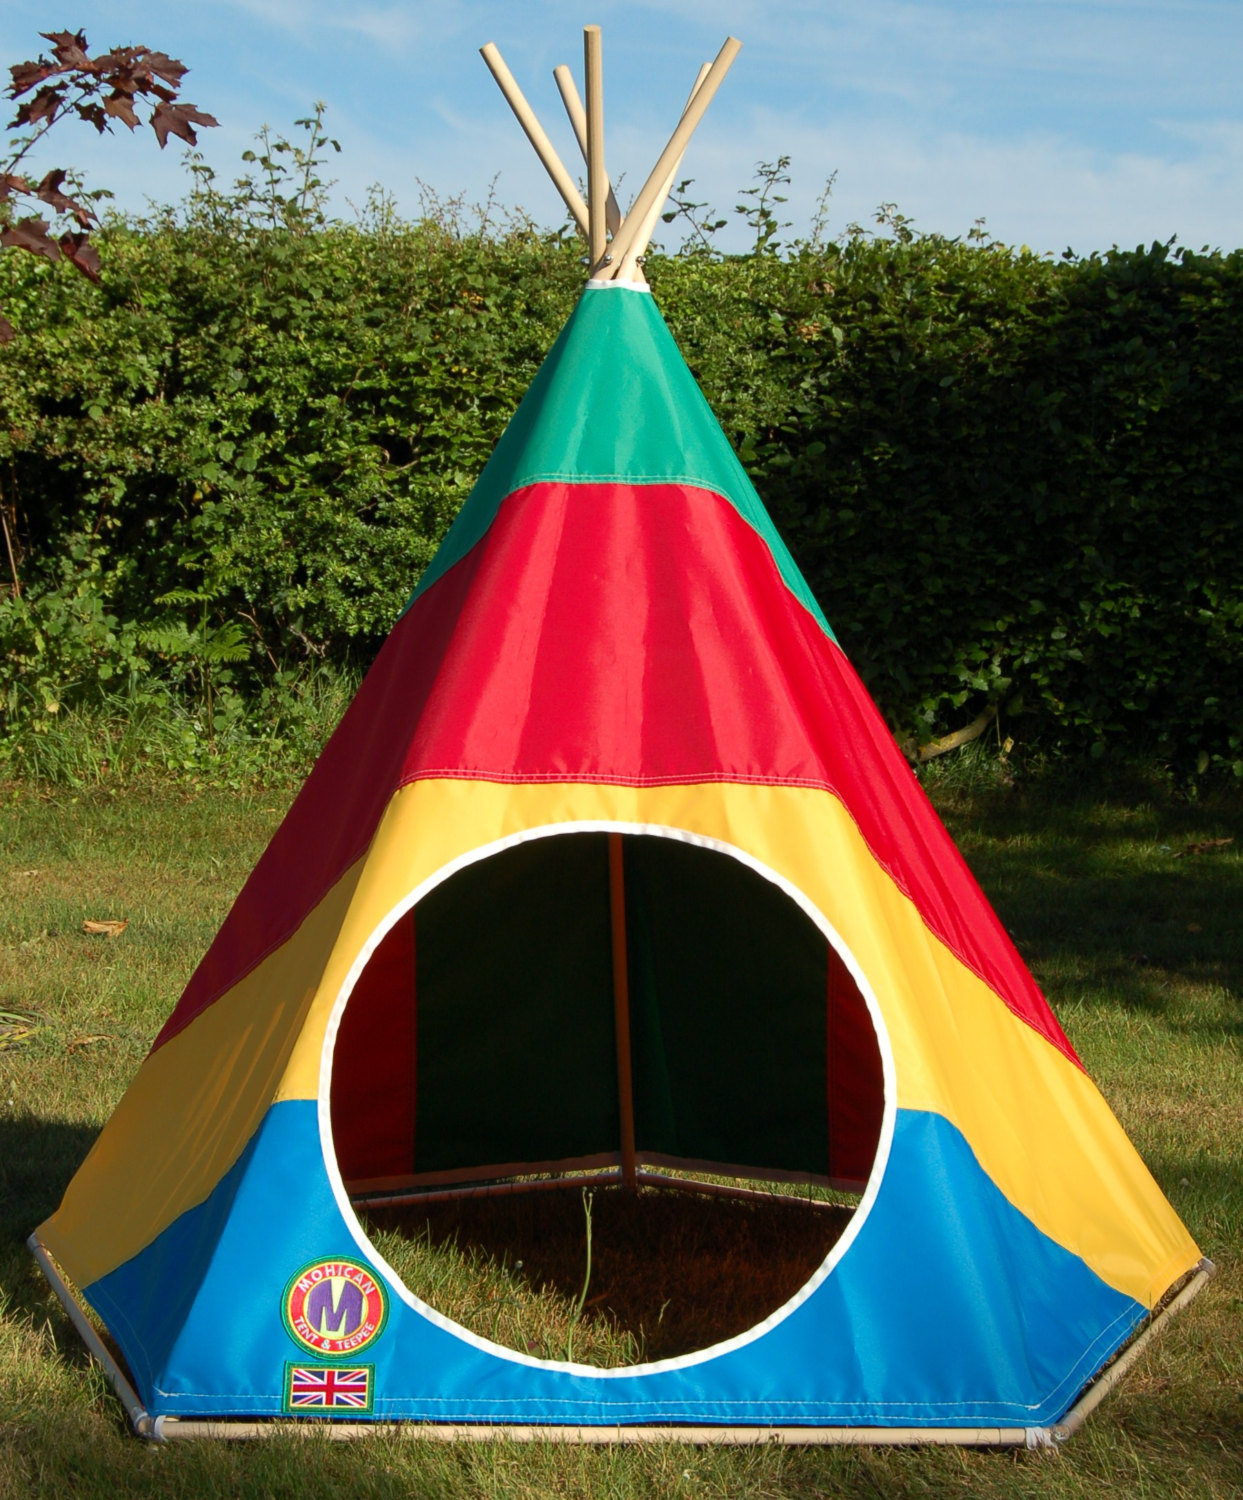 & The Mohican teepees